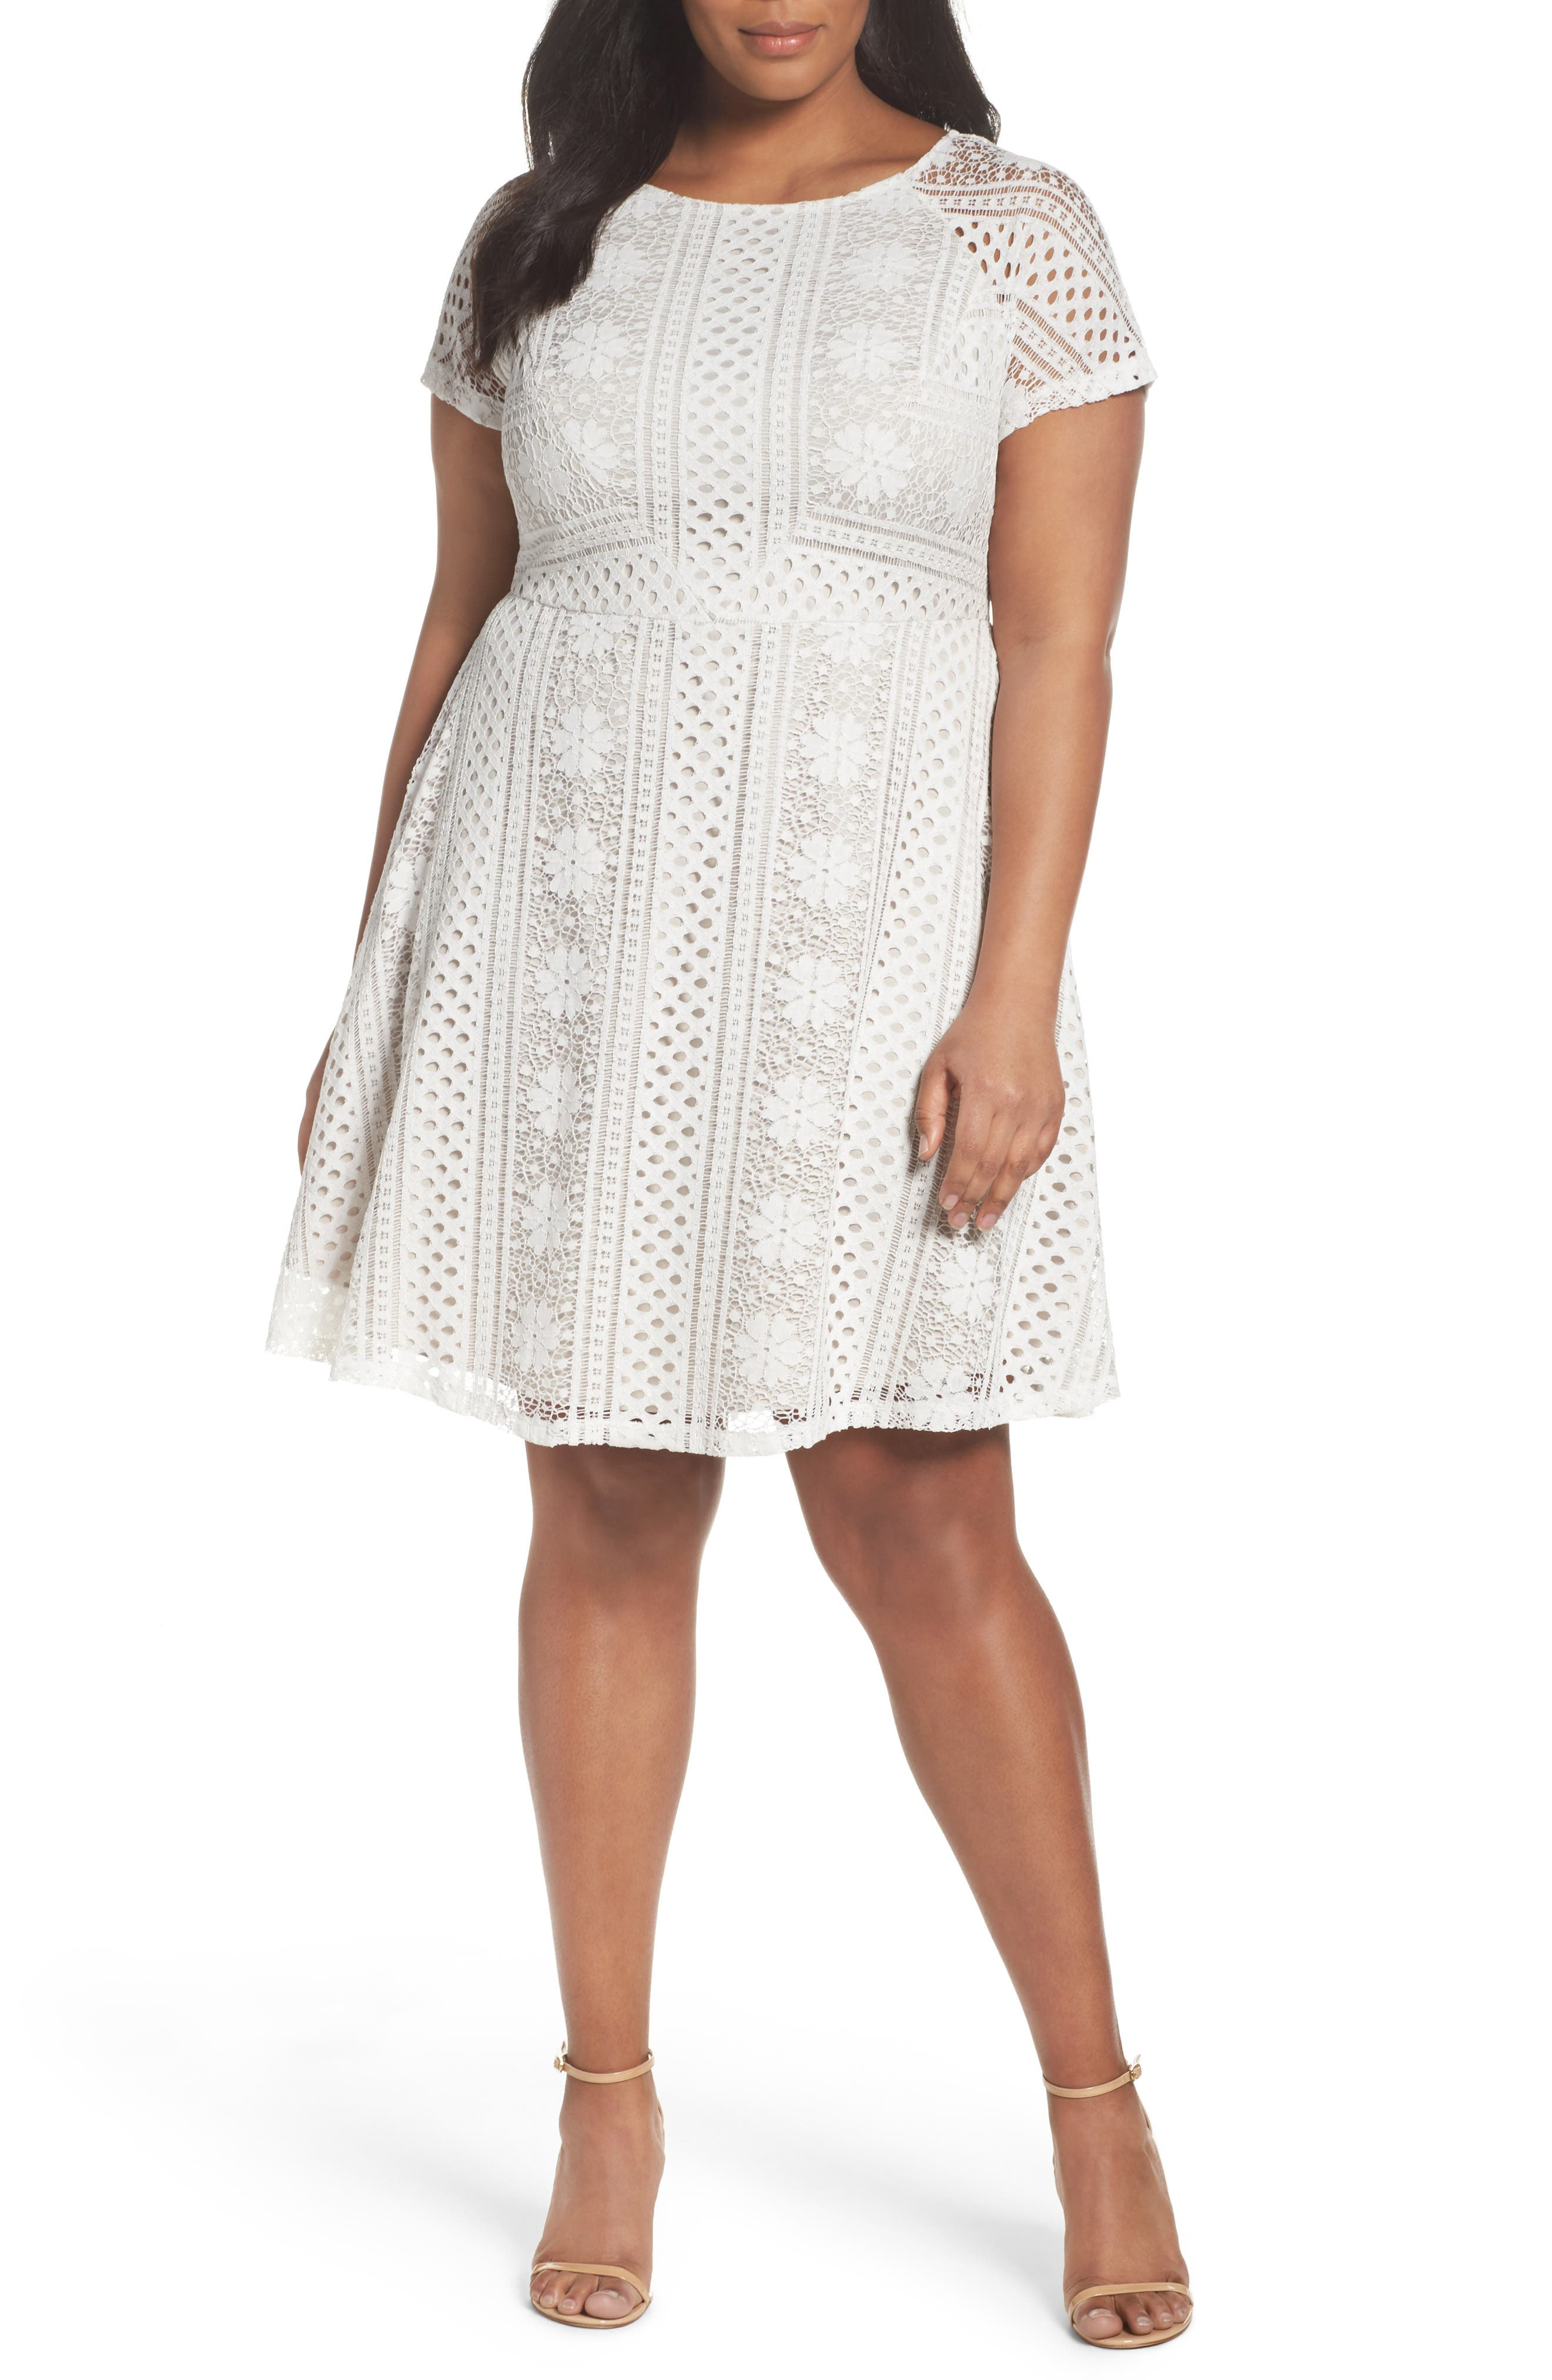 Alternate Image 1 Selected - Adrianna Papell A-Line Lace Dress (Plus Size)